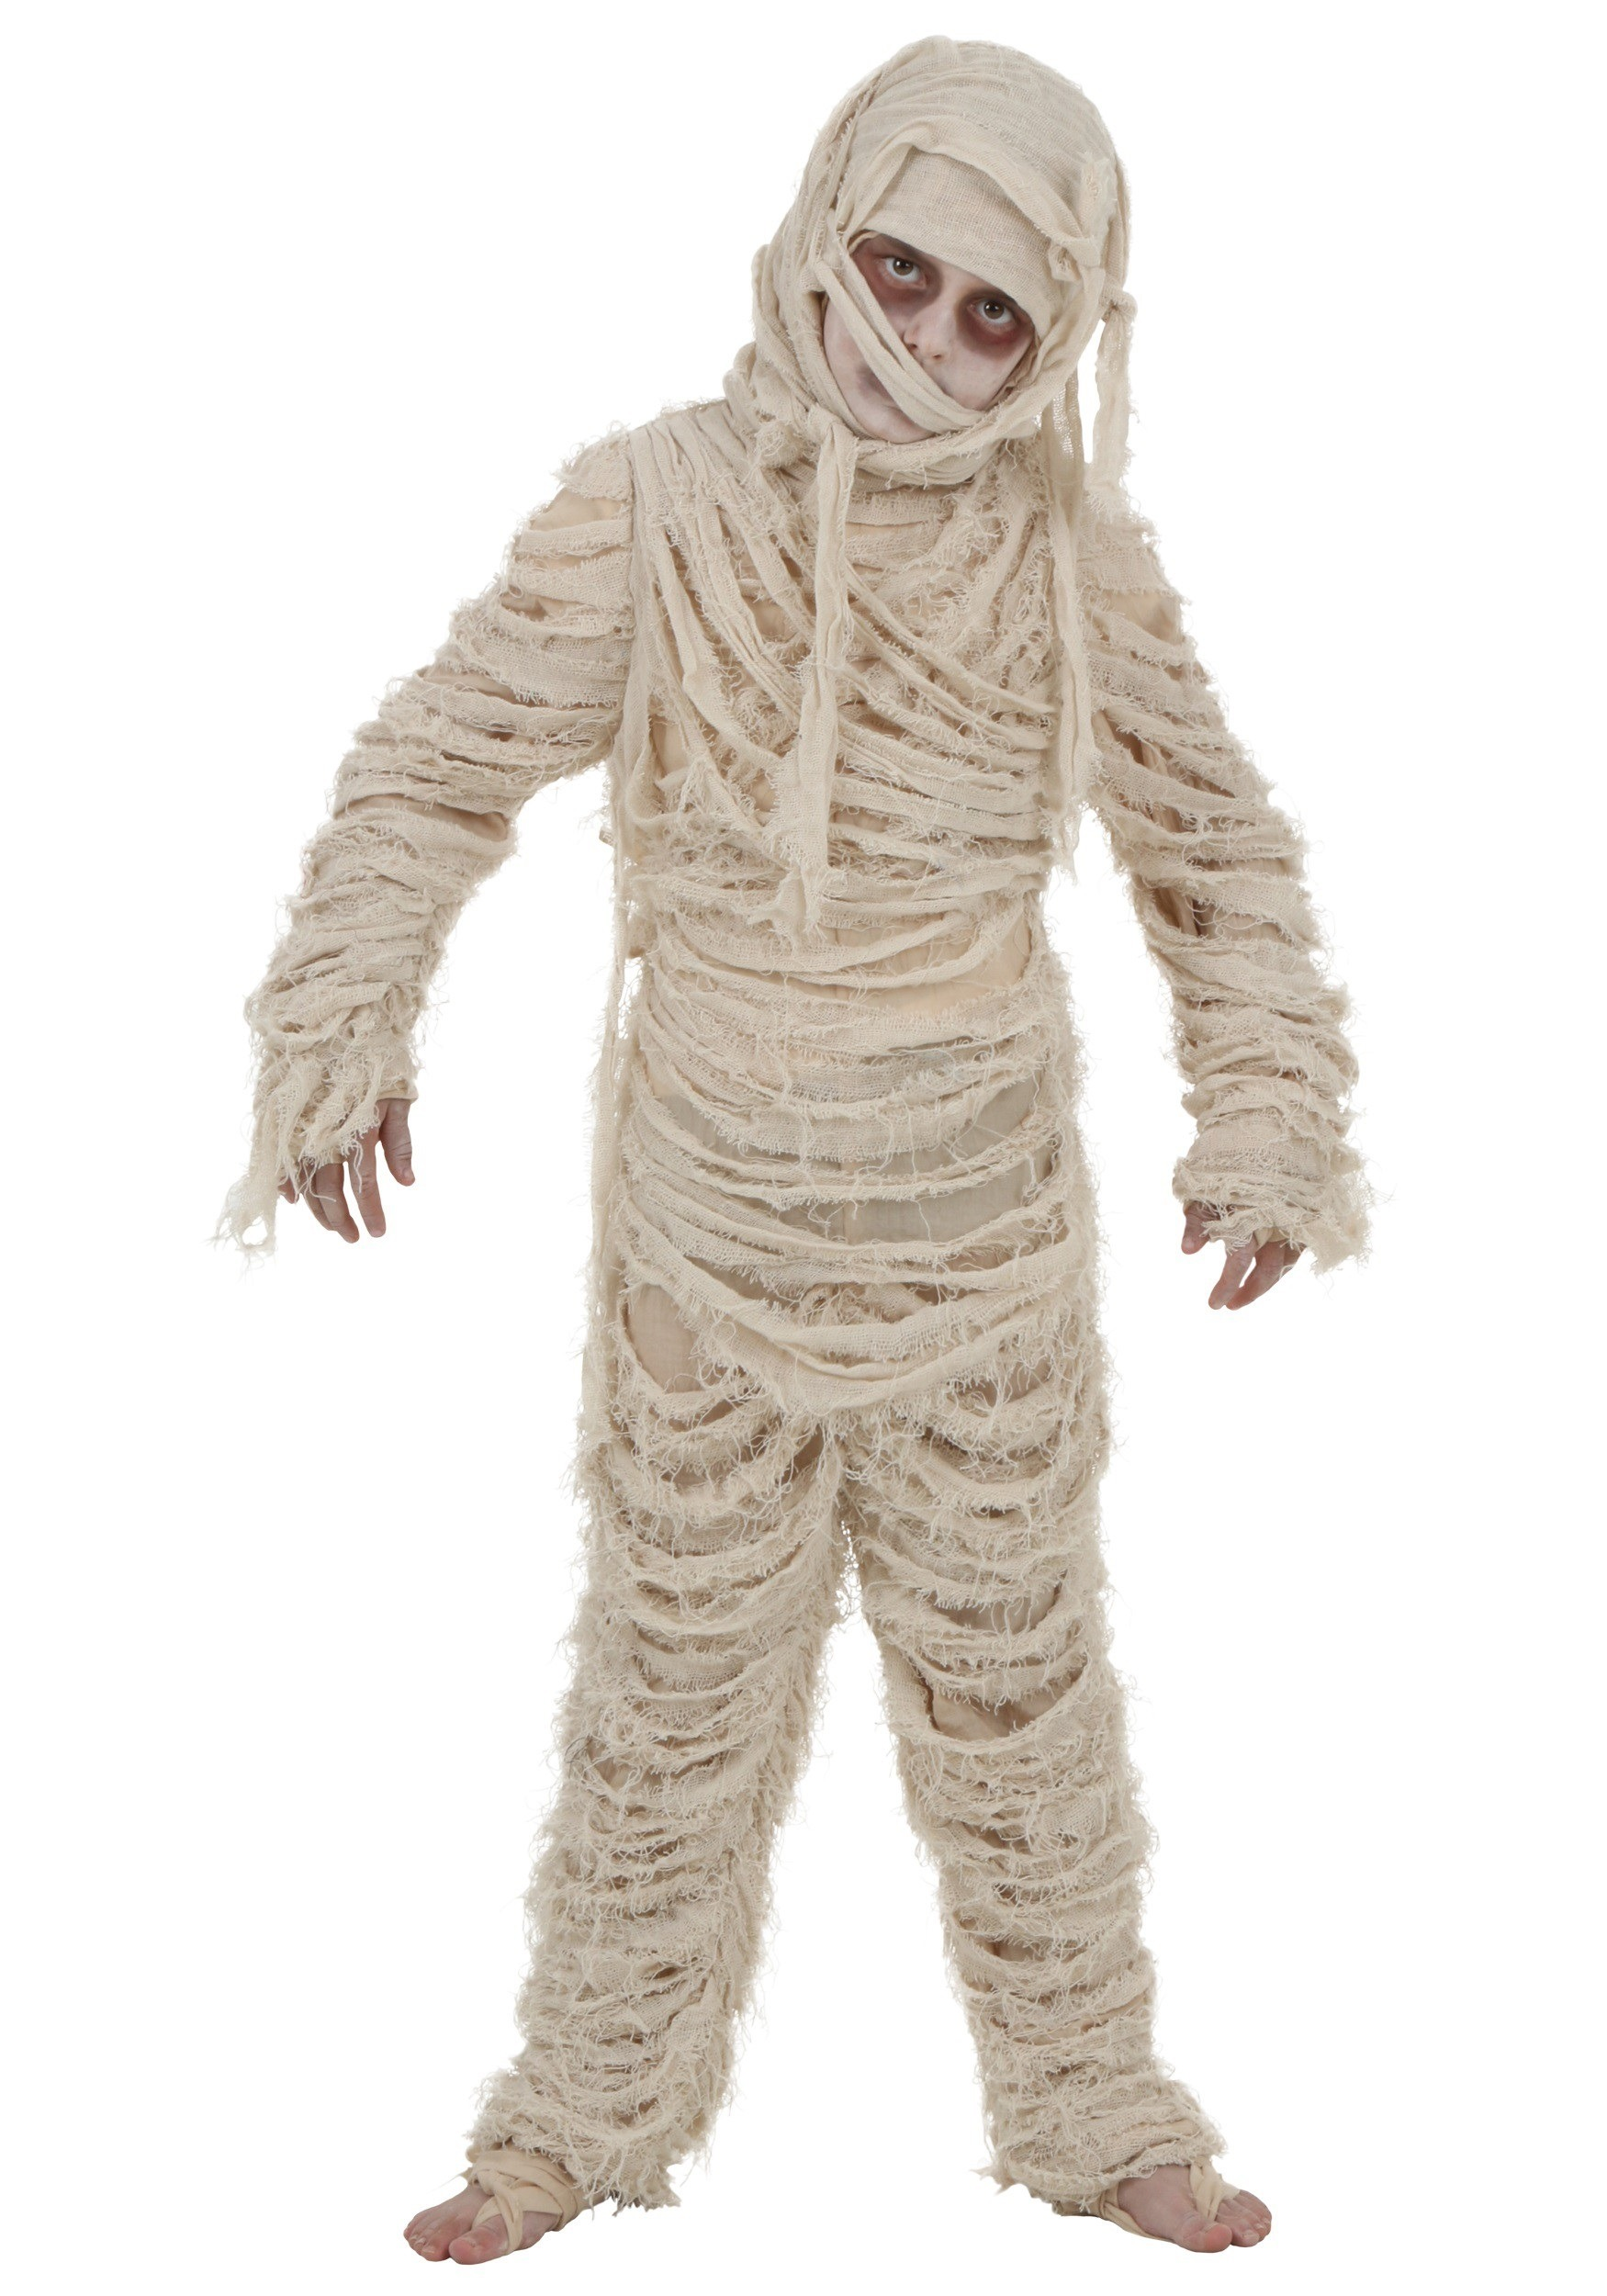 Boyu0027s Mummy Costume  sc 1 st  Halloween Costumes & Mummy Costumes - Classic Scary Monster Costumes for Adults and Kids